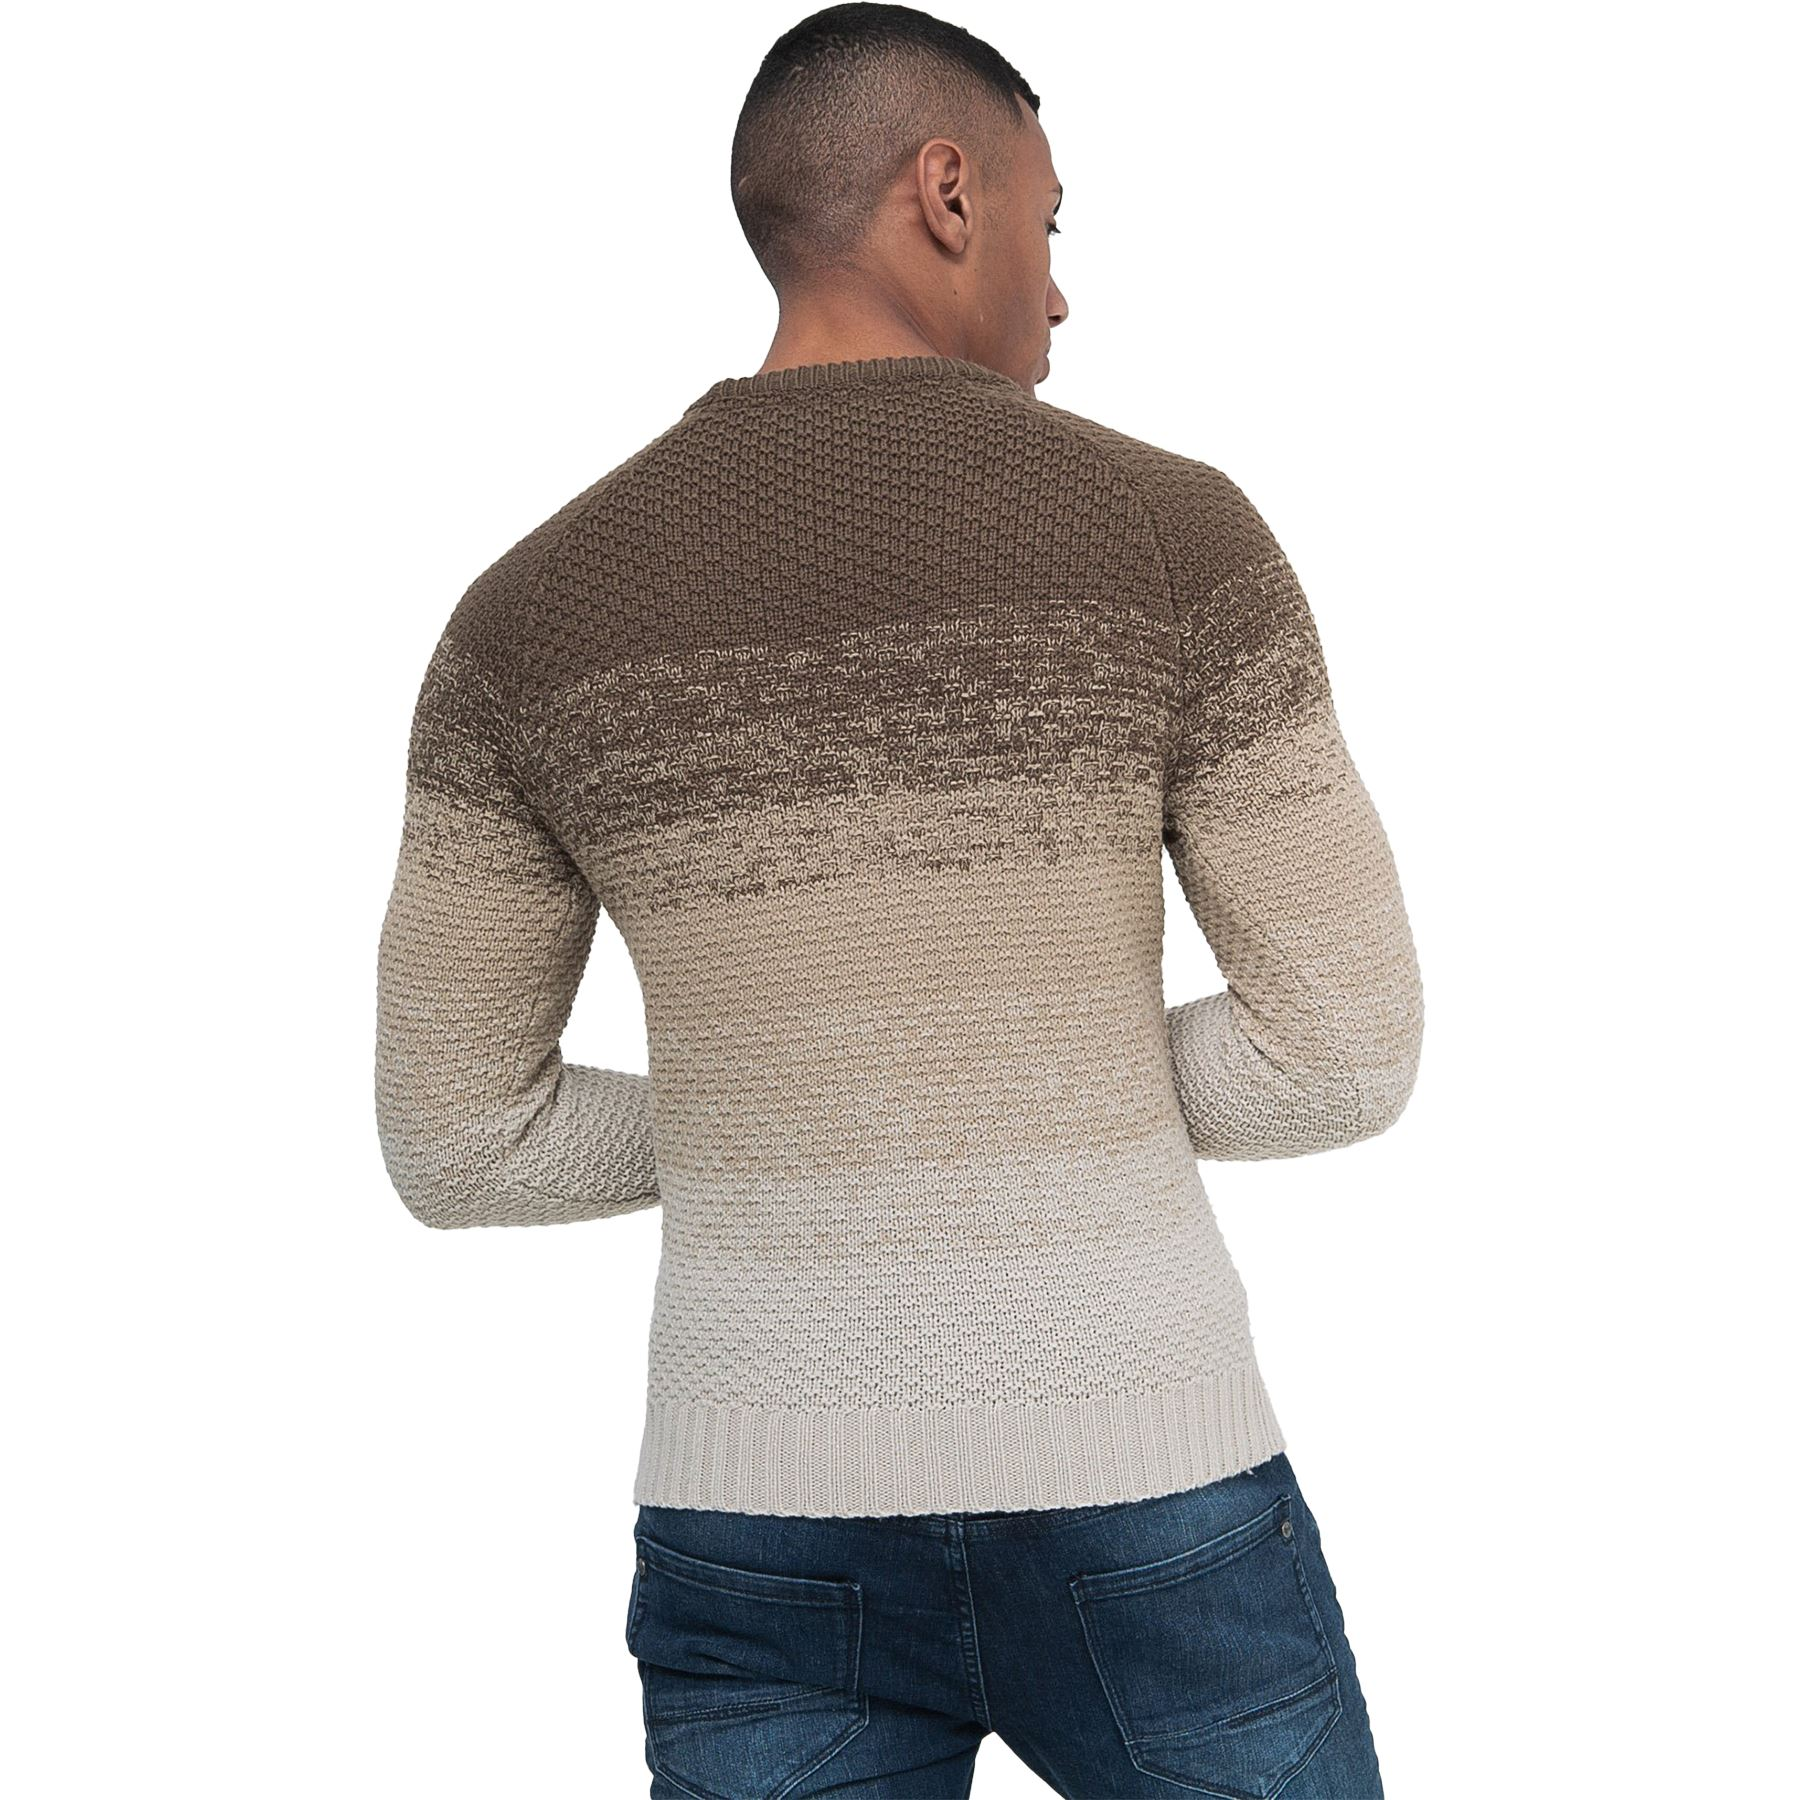 Mens-Knit-Jumper-Cable-Fisherman-Crosshatch-Sweater-Pullover-Top-Ribbed-Winter thumbnail 3